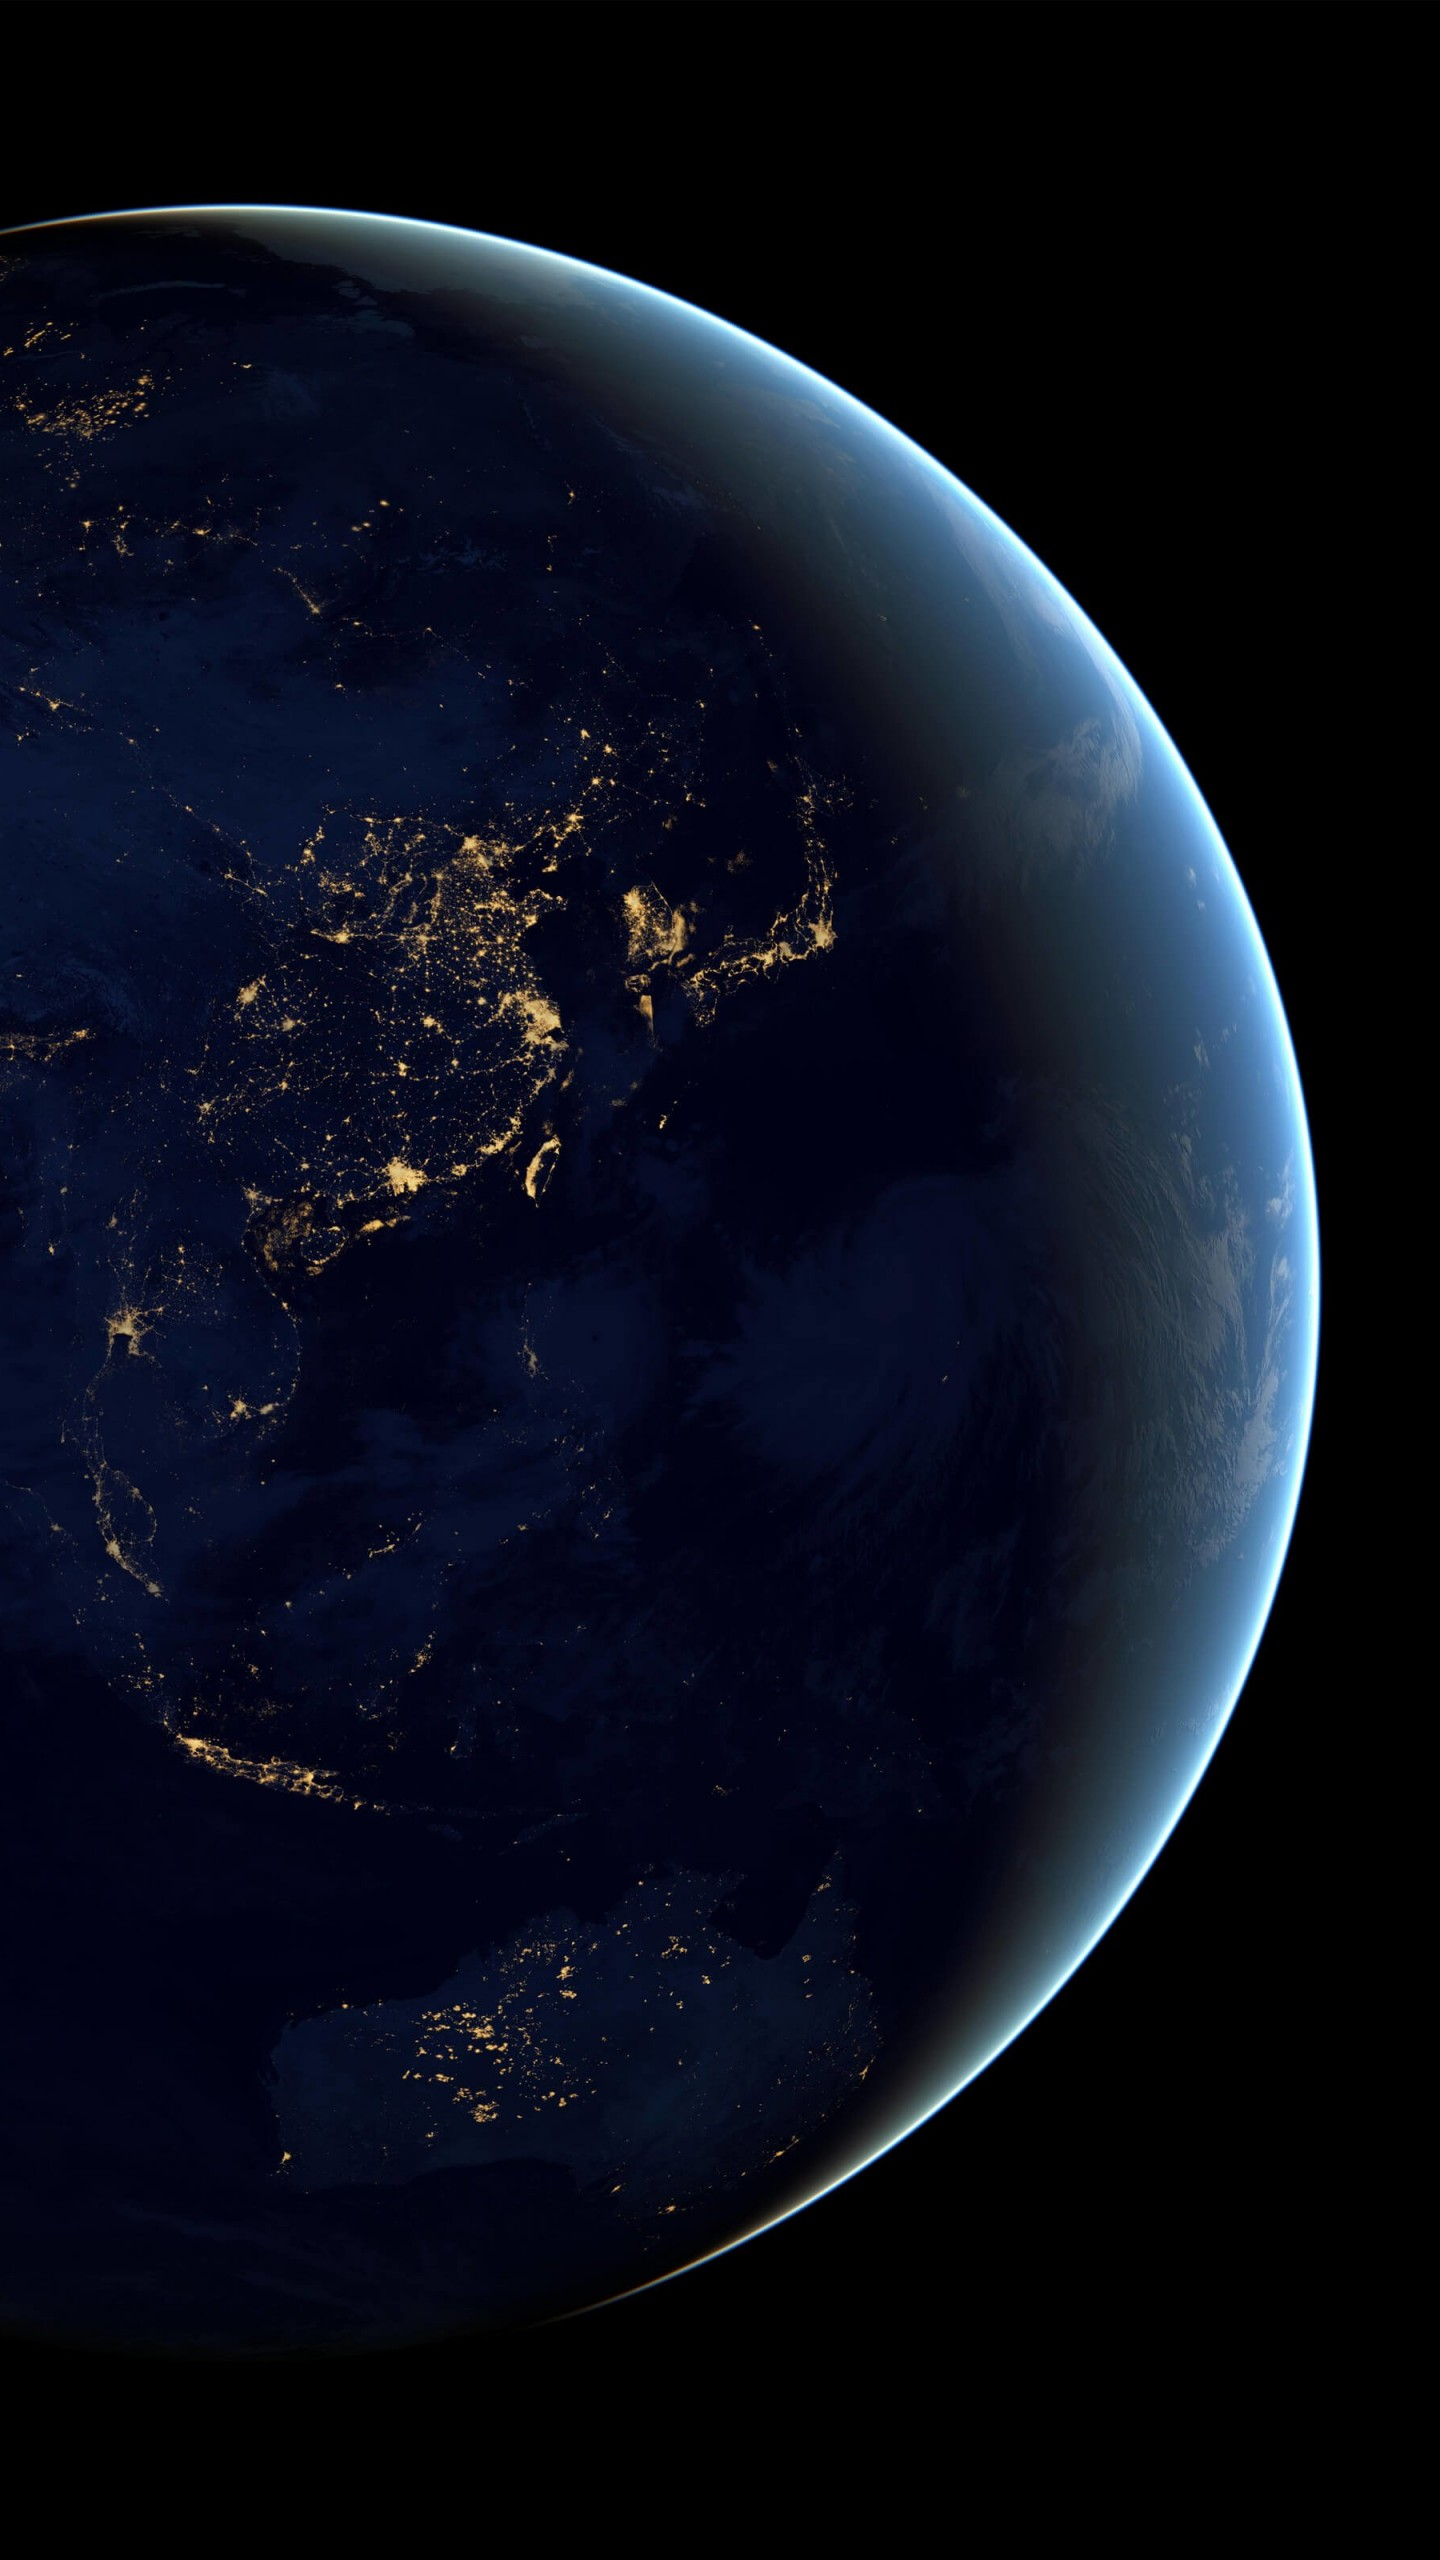 Earth At Night Seen From Space Wallpaper for SAMSUNG Galaxy S6